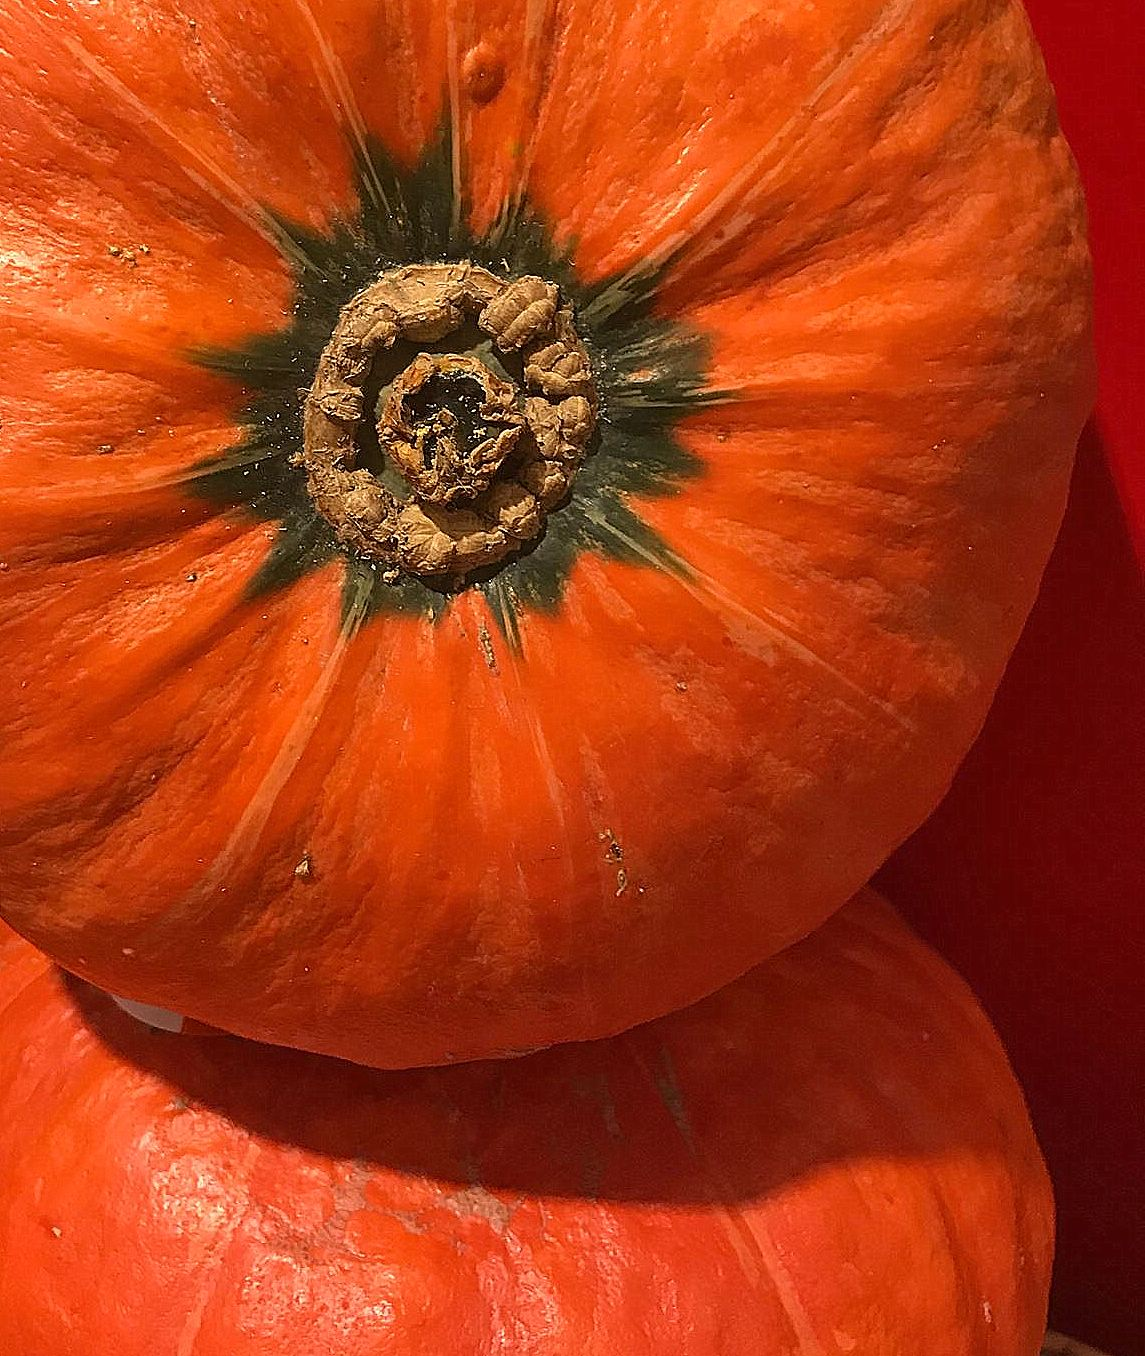 the autumn fruit of pumpkin